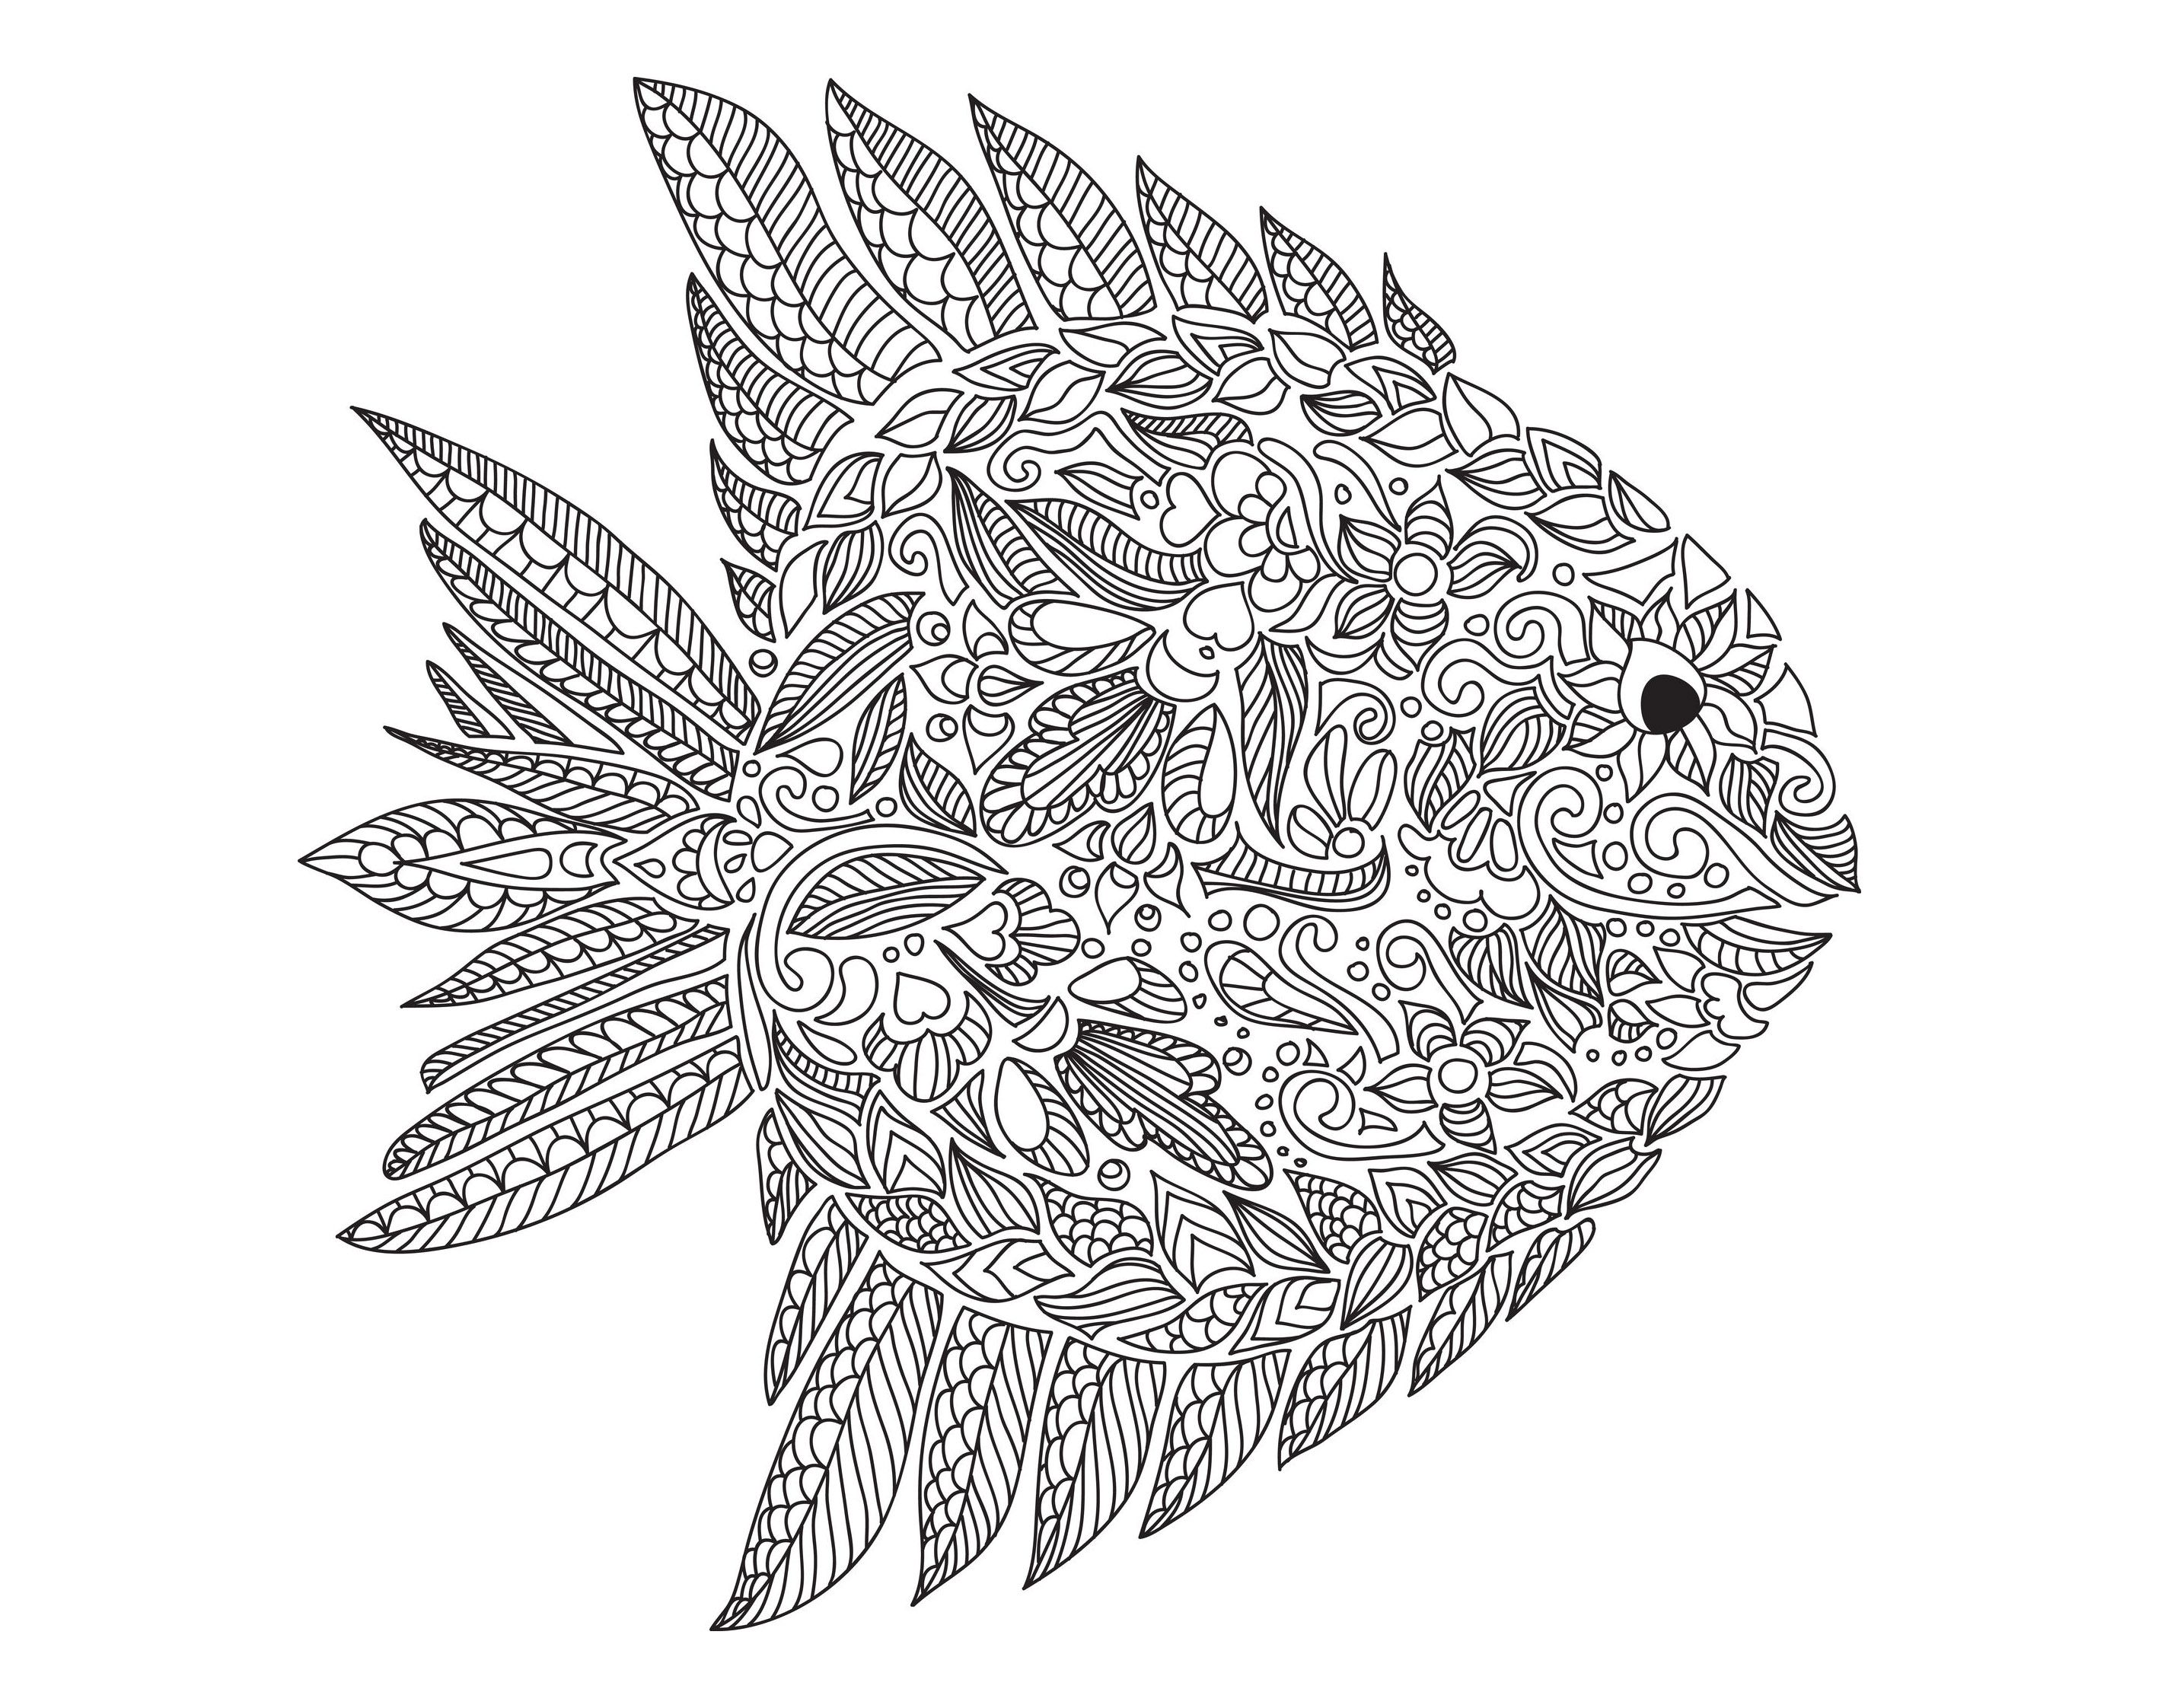 Free printable zentangle coloring pages for adults - Adult Zentangle Fish By Artnataliia Coloring Pages Printable And Coloring Book To Print For Free Find More Coloring Pages Online For Kids And Adults Of